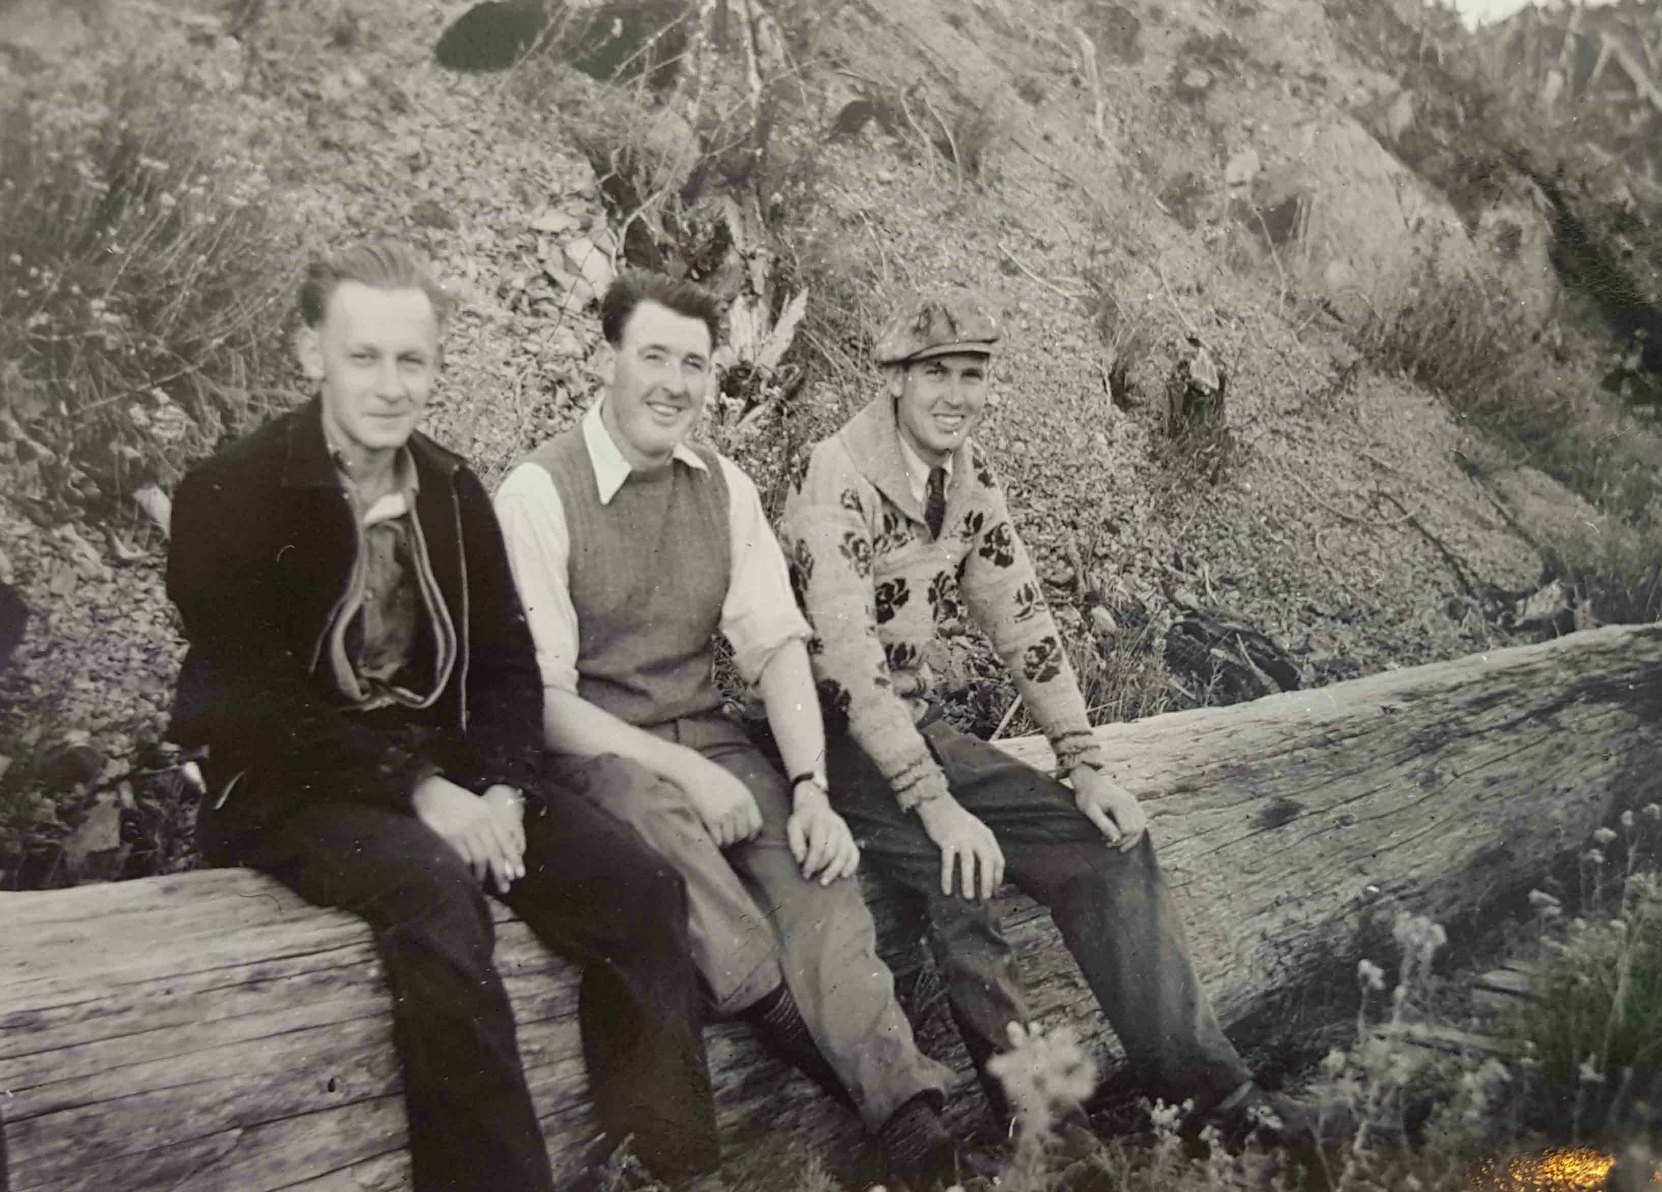 Casimir Kopec (left), Claude Green (center) and an unidentified man, circa 1940